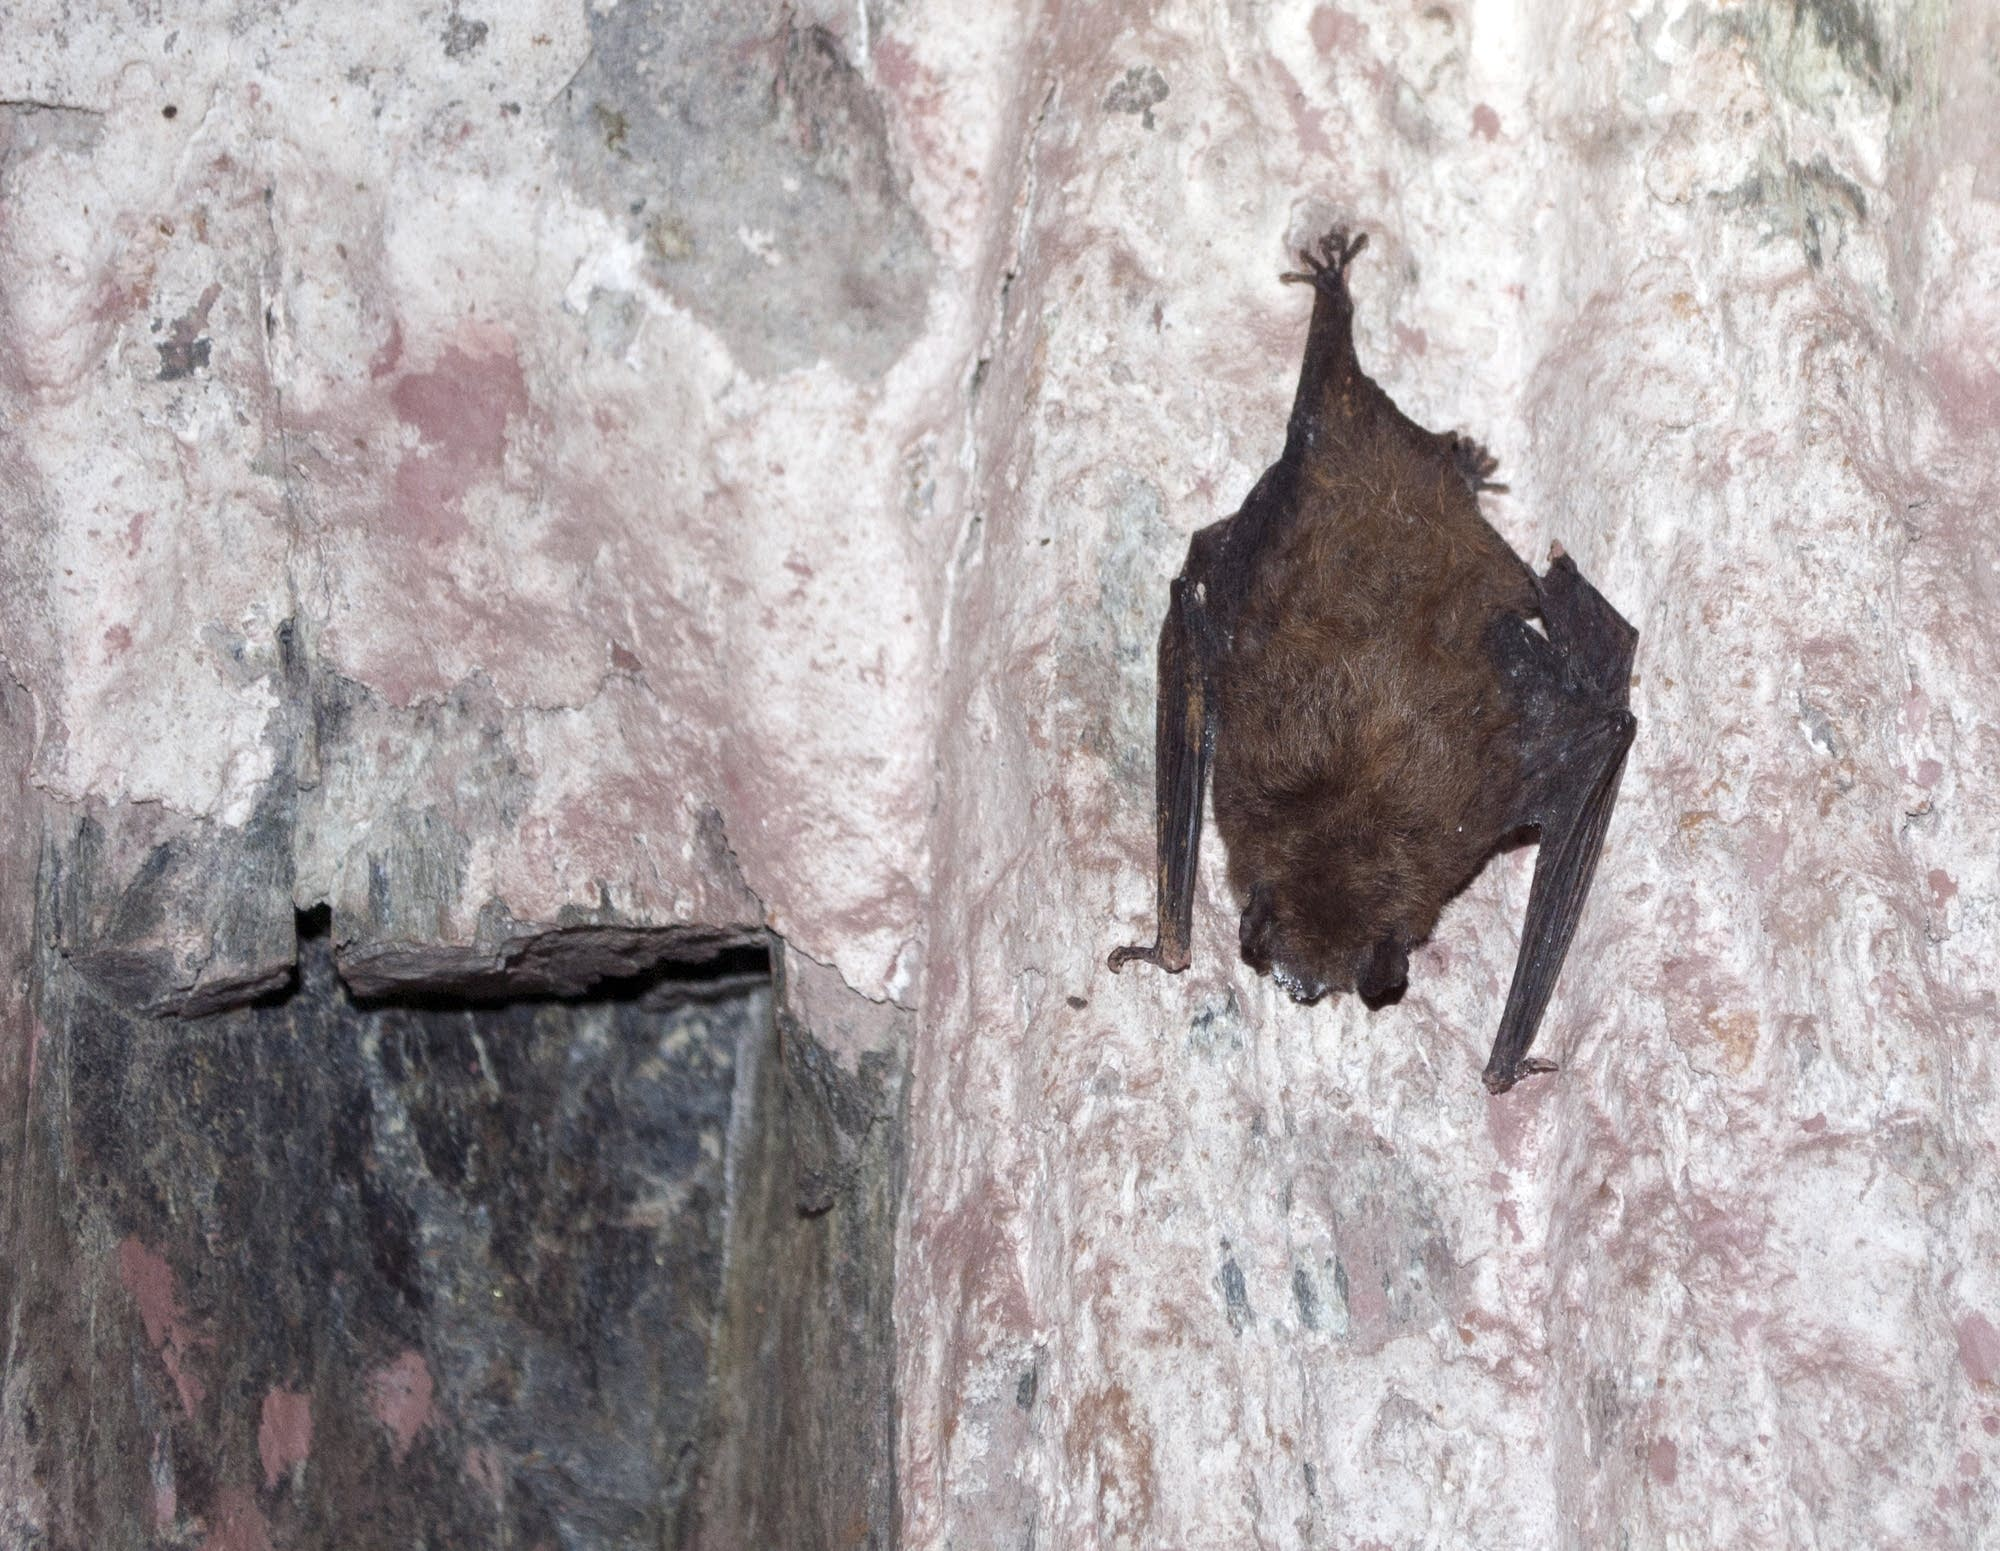 A bat illuminated by a headlamp clings to the walls deep underground.